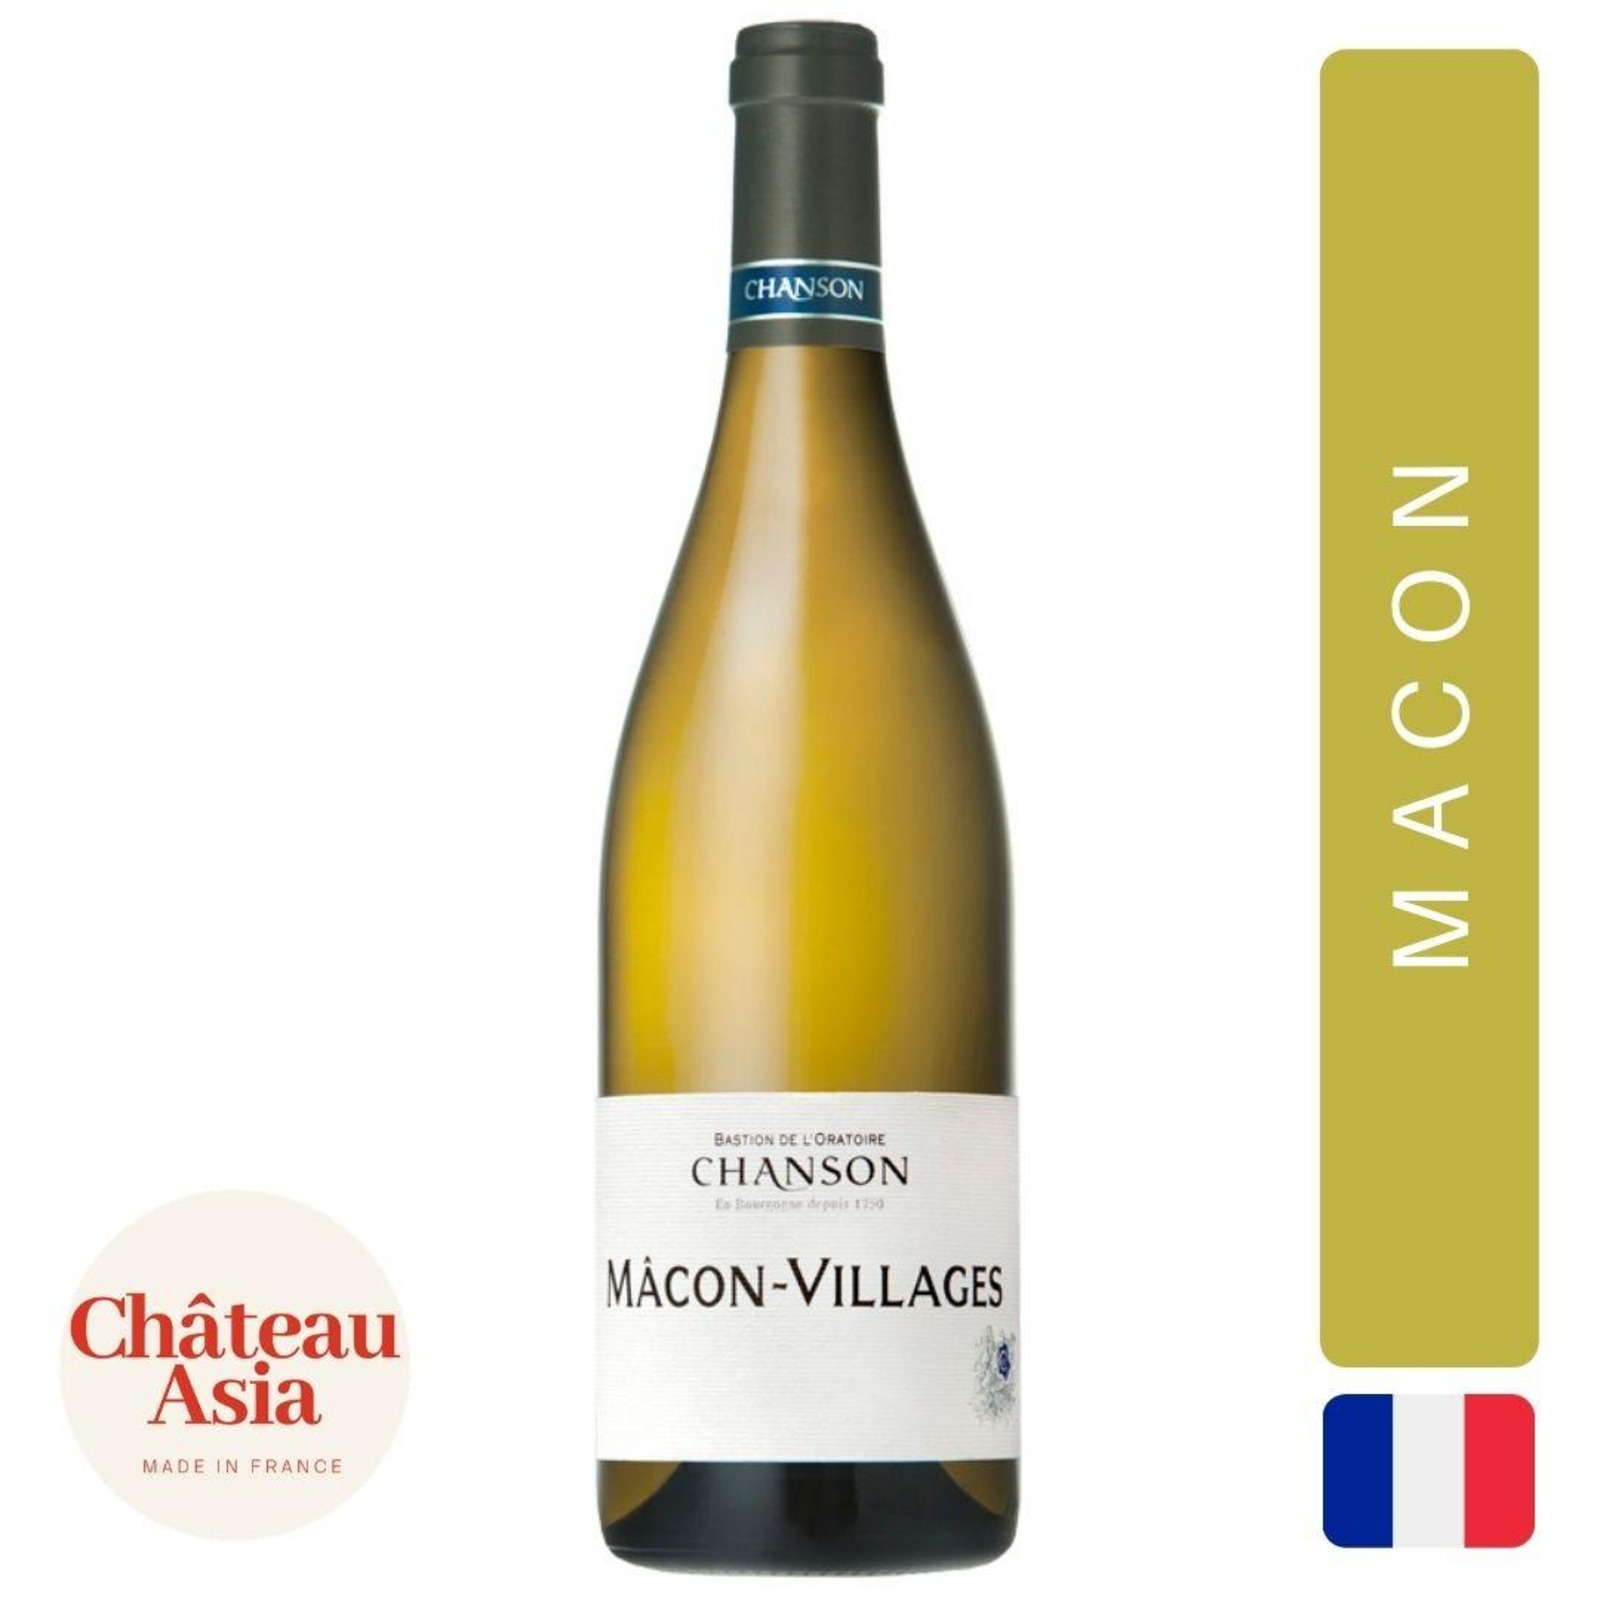 Domaine Chanson - Macon Villages - Burgundy White Wine